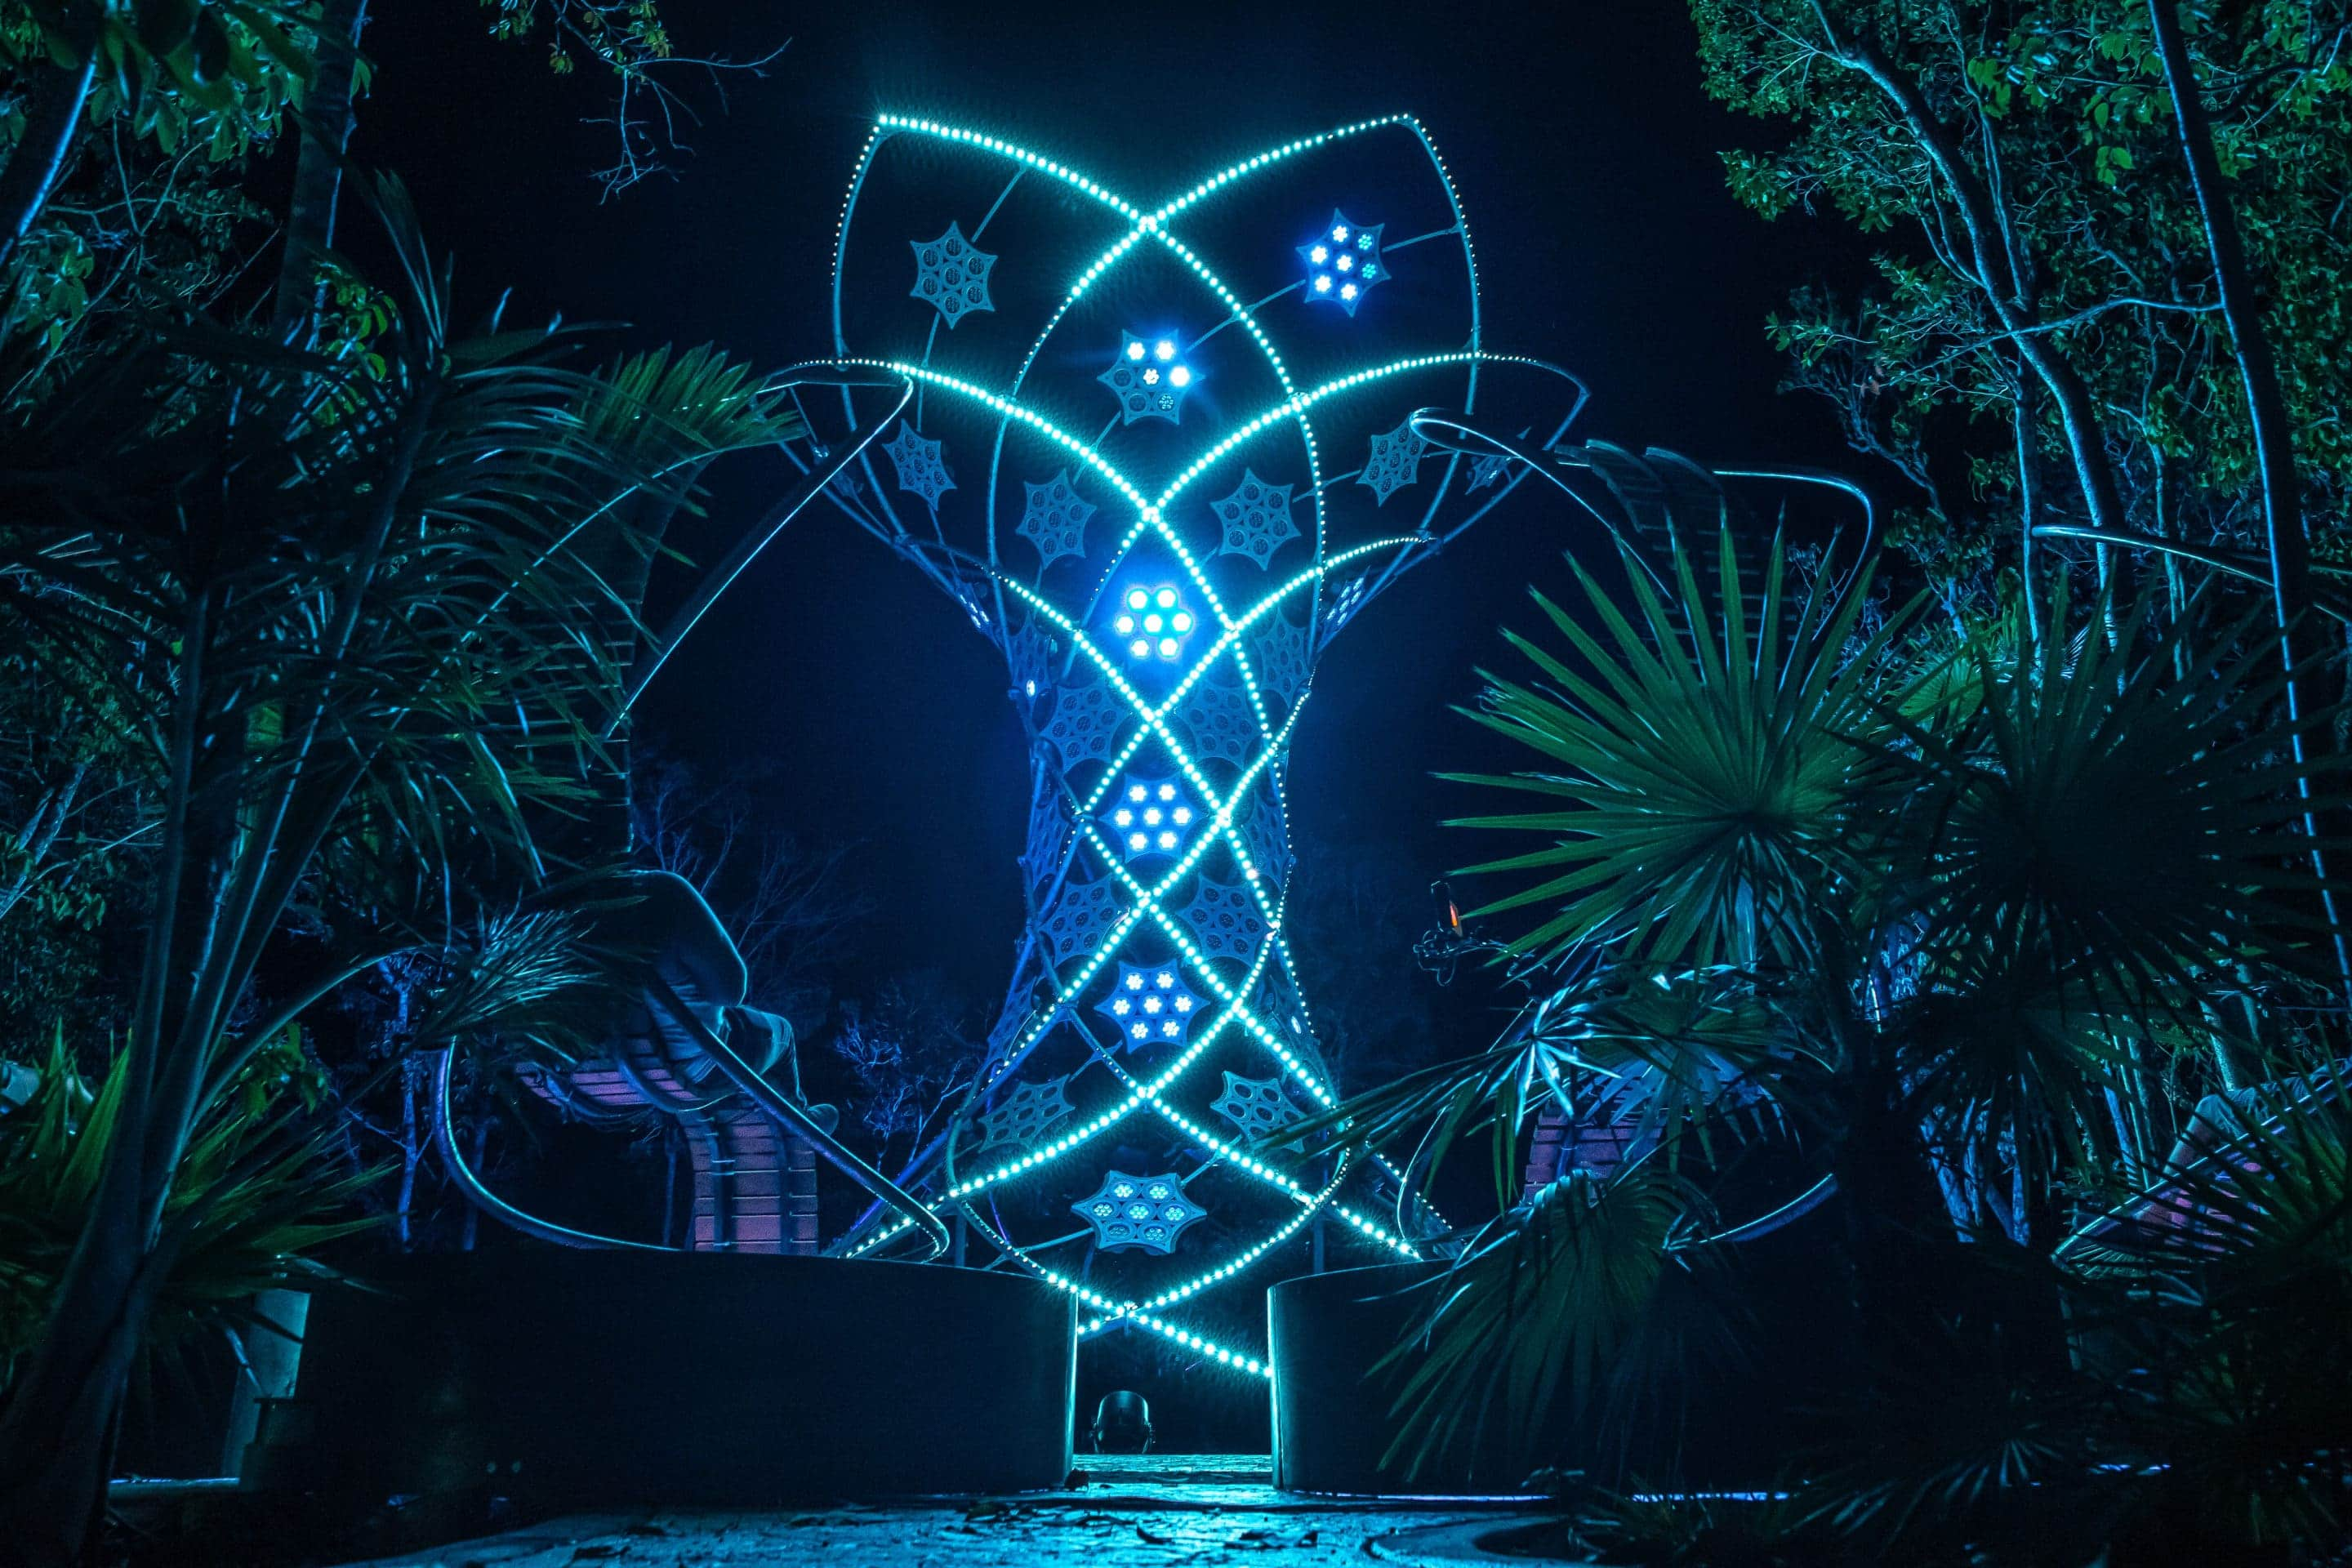 Art With Me Festival Tulum Announces Art & Music Lineup